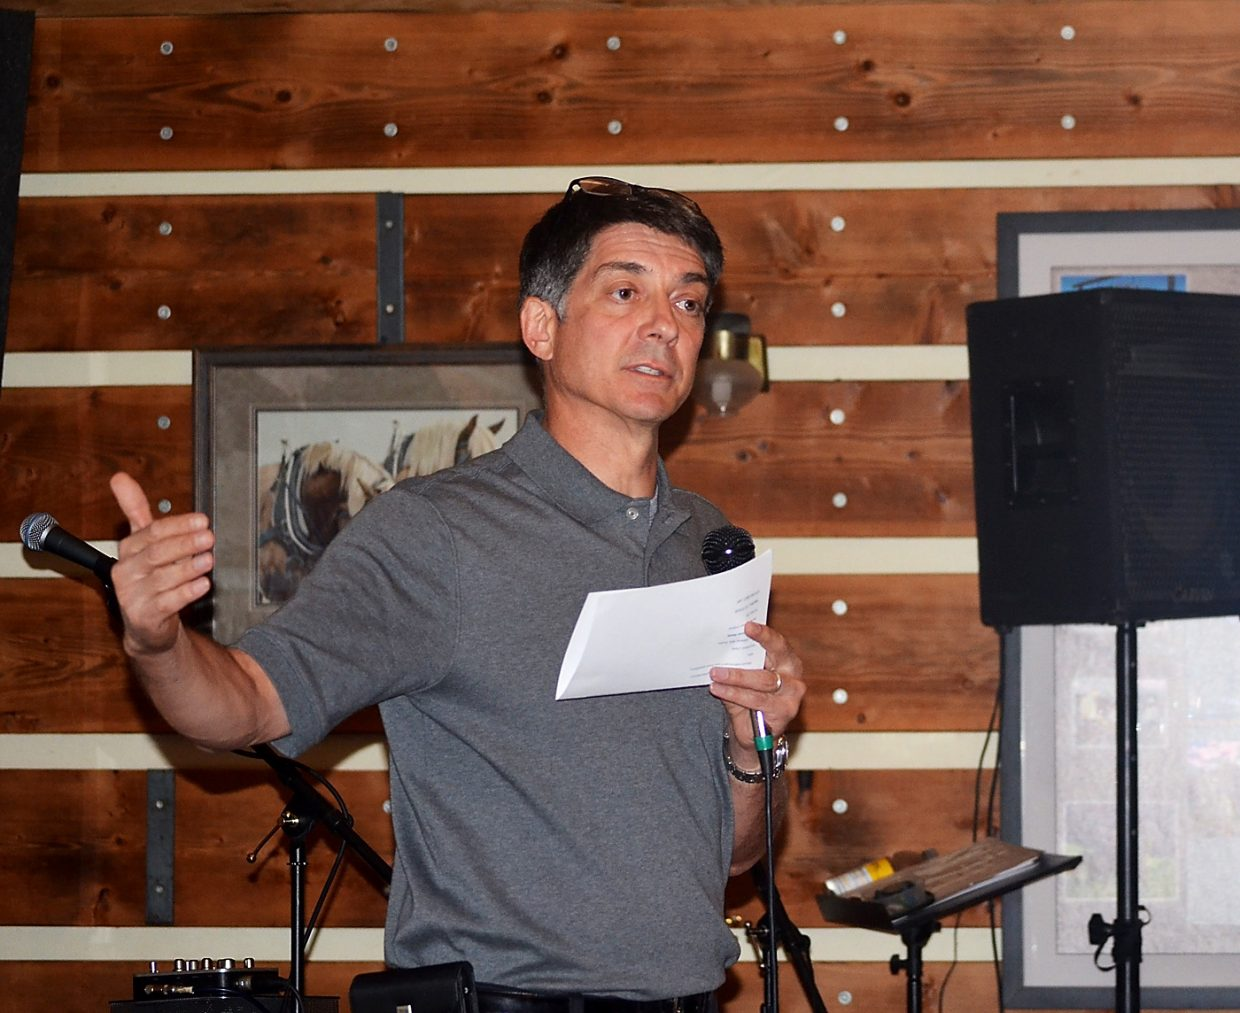 Matt Lepore, director of the Colorado Oil and Gas Conservation Commission, updates members of Citizens Supporting Property Rights on Thursday night at Saddleback Ranch on the creation of a new statewide task force to advise Colorado officials on legislation, regulations and policies pertaining to energy exploration.